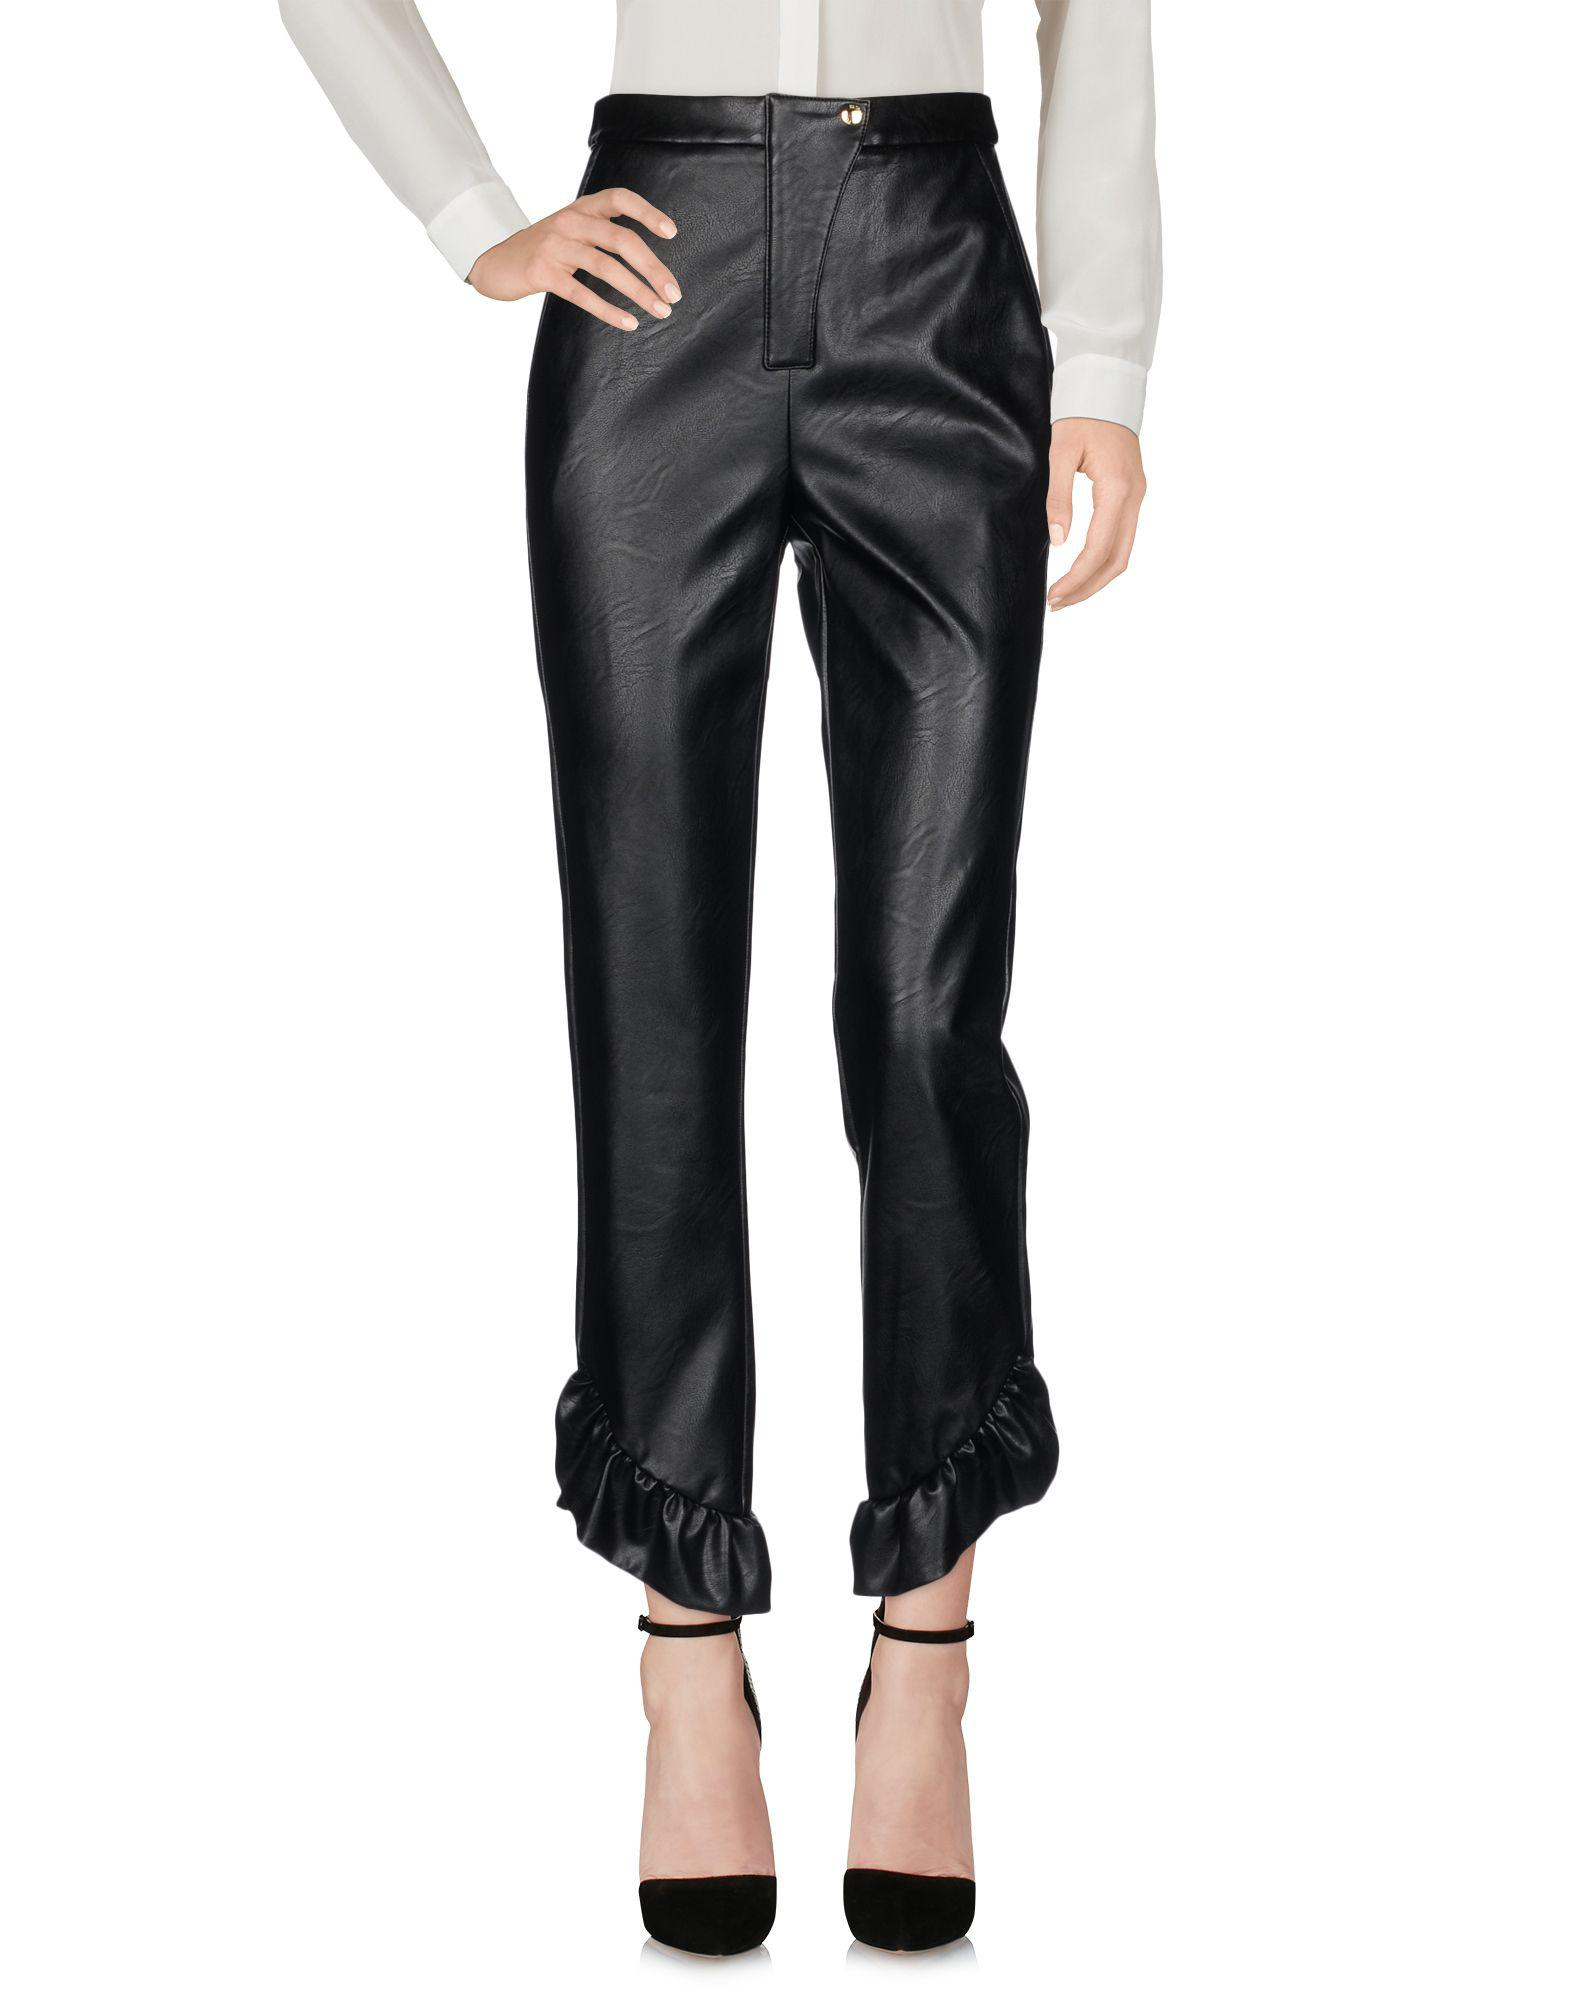 8678c756a9 Lyst - Patrizia Pepe Casual Pants in Black